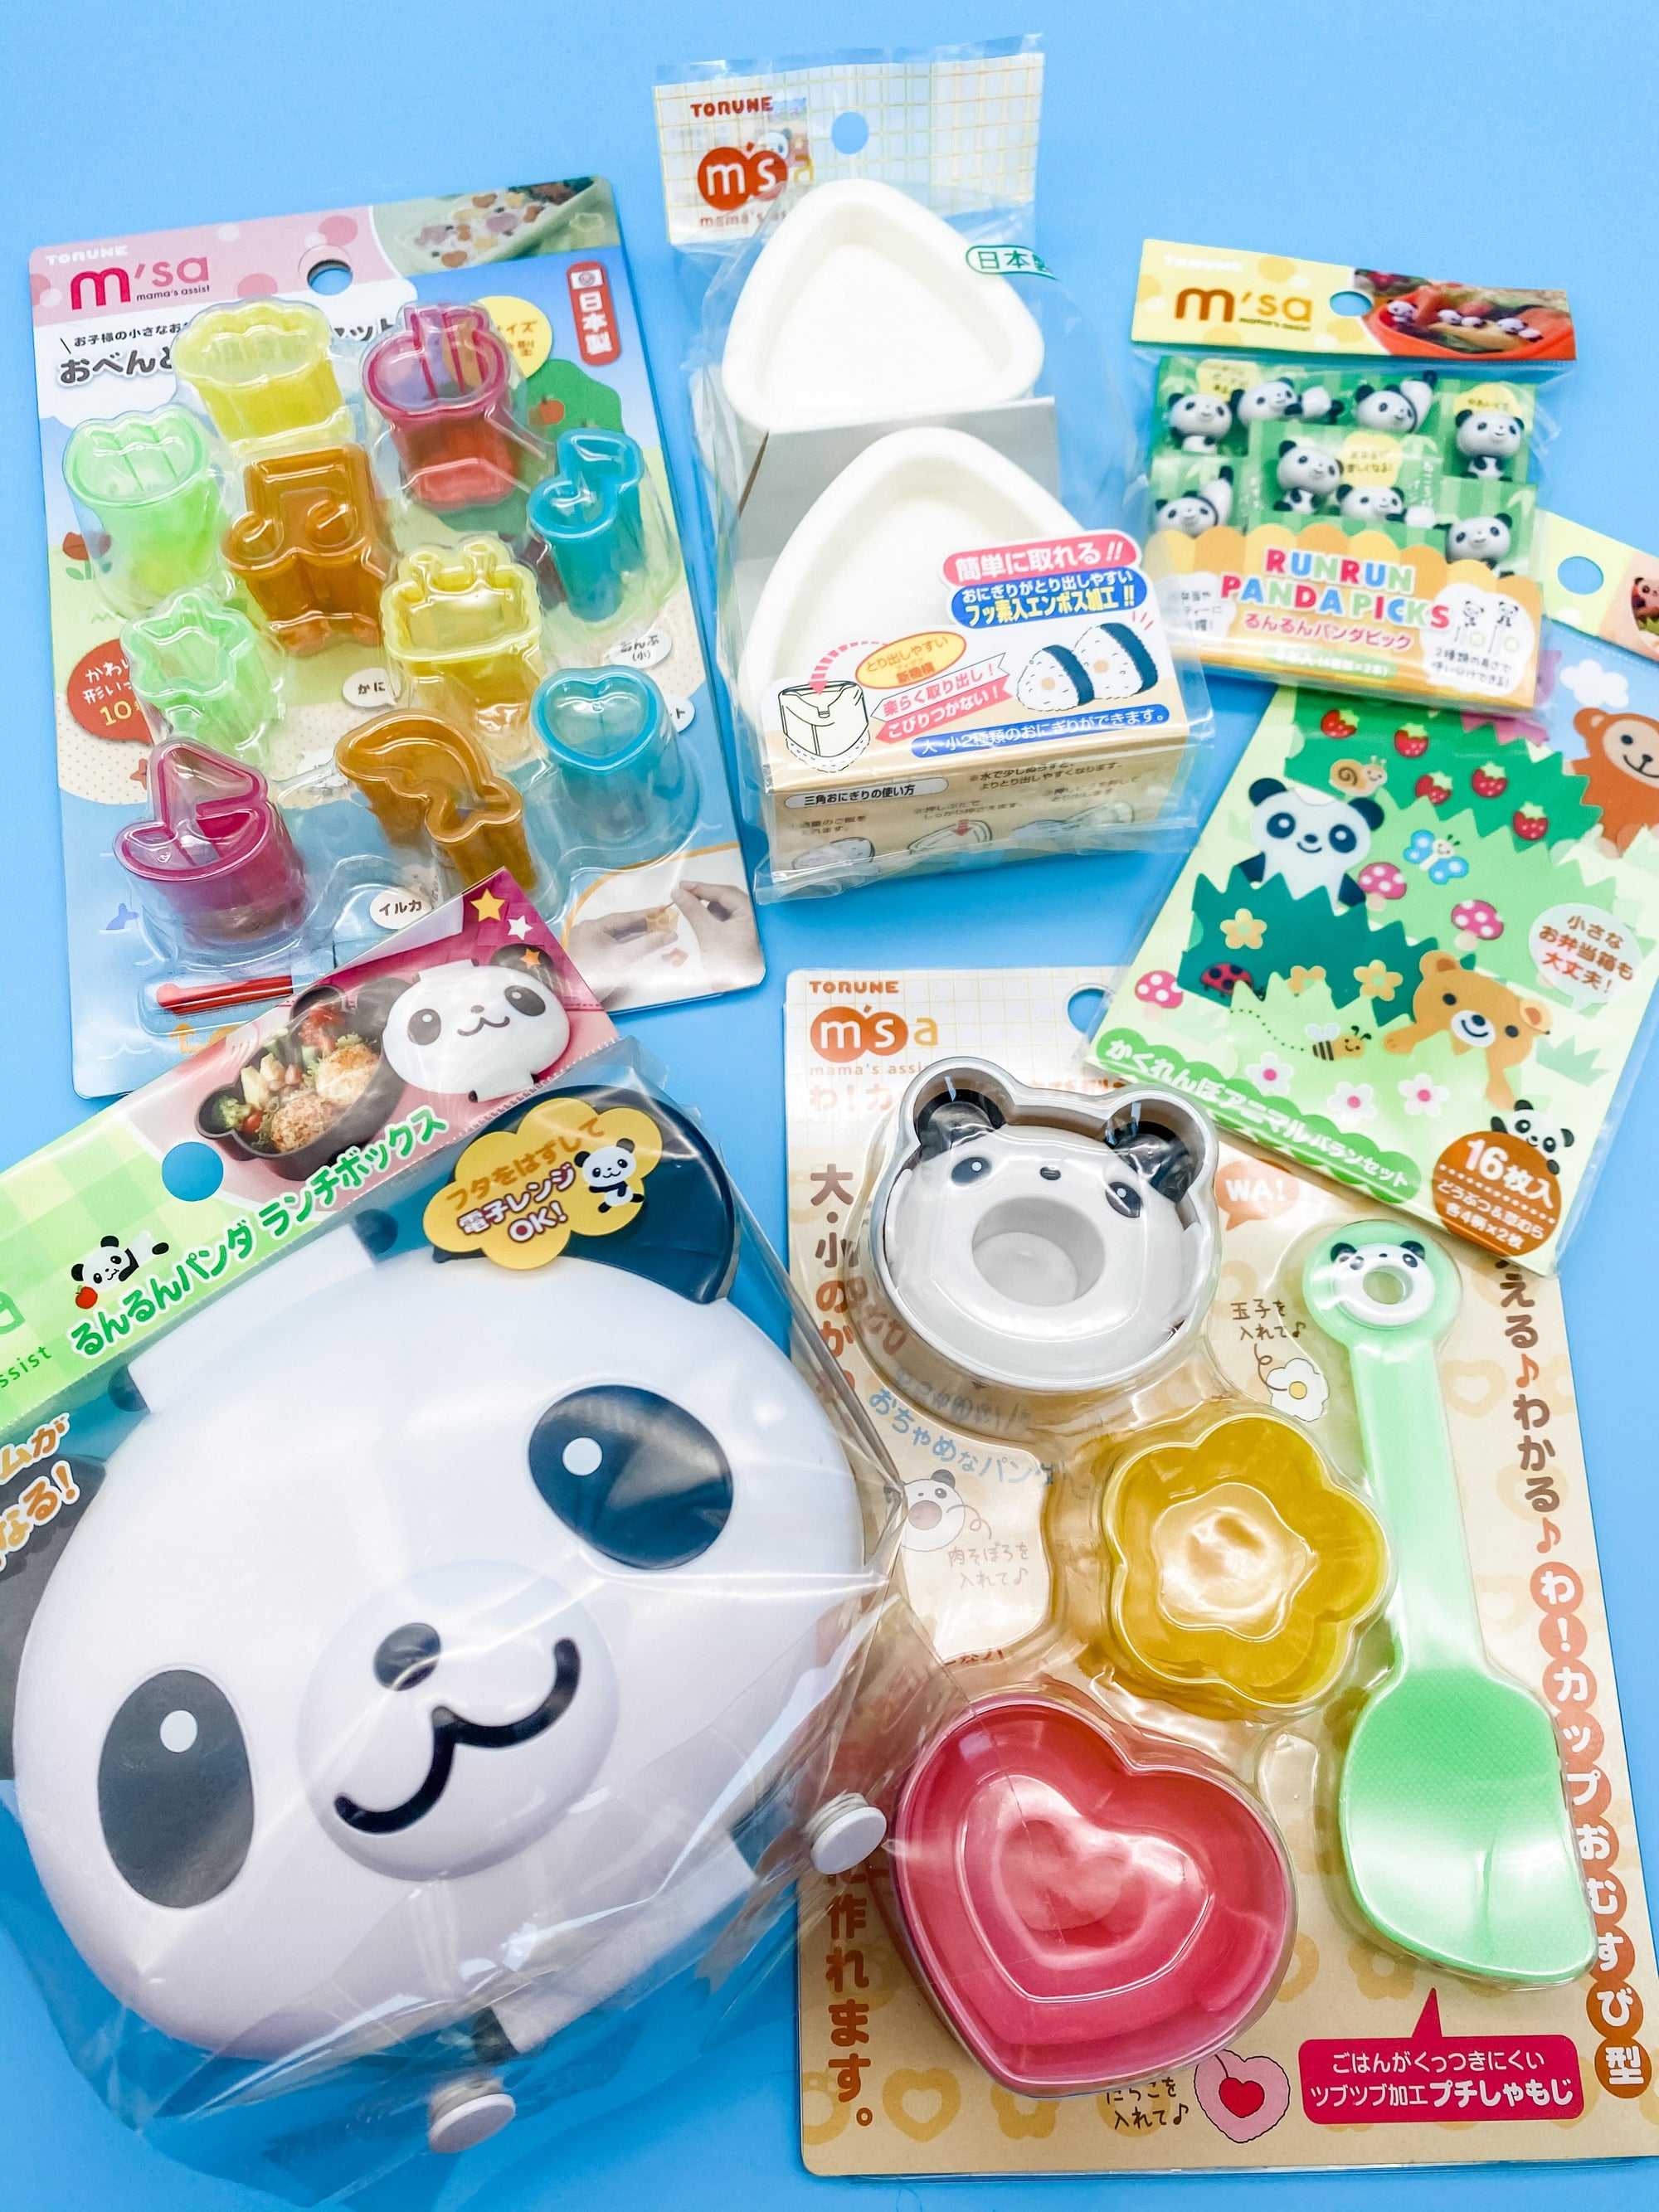 Panda Bento Box Complete Kit with FREE Panda Picks